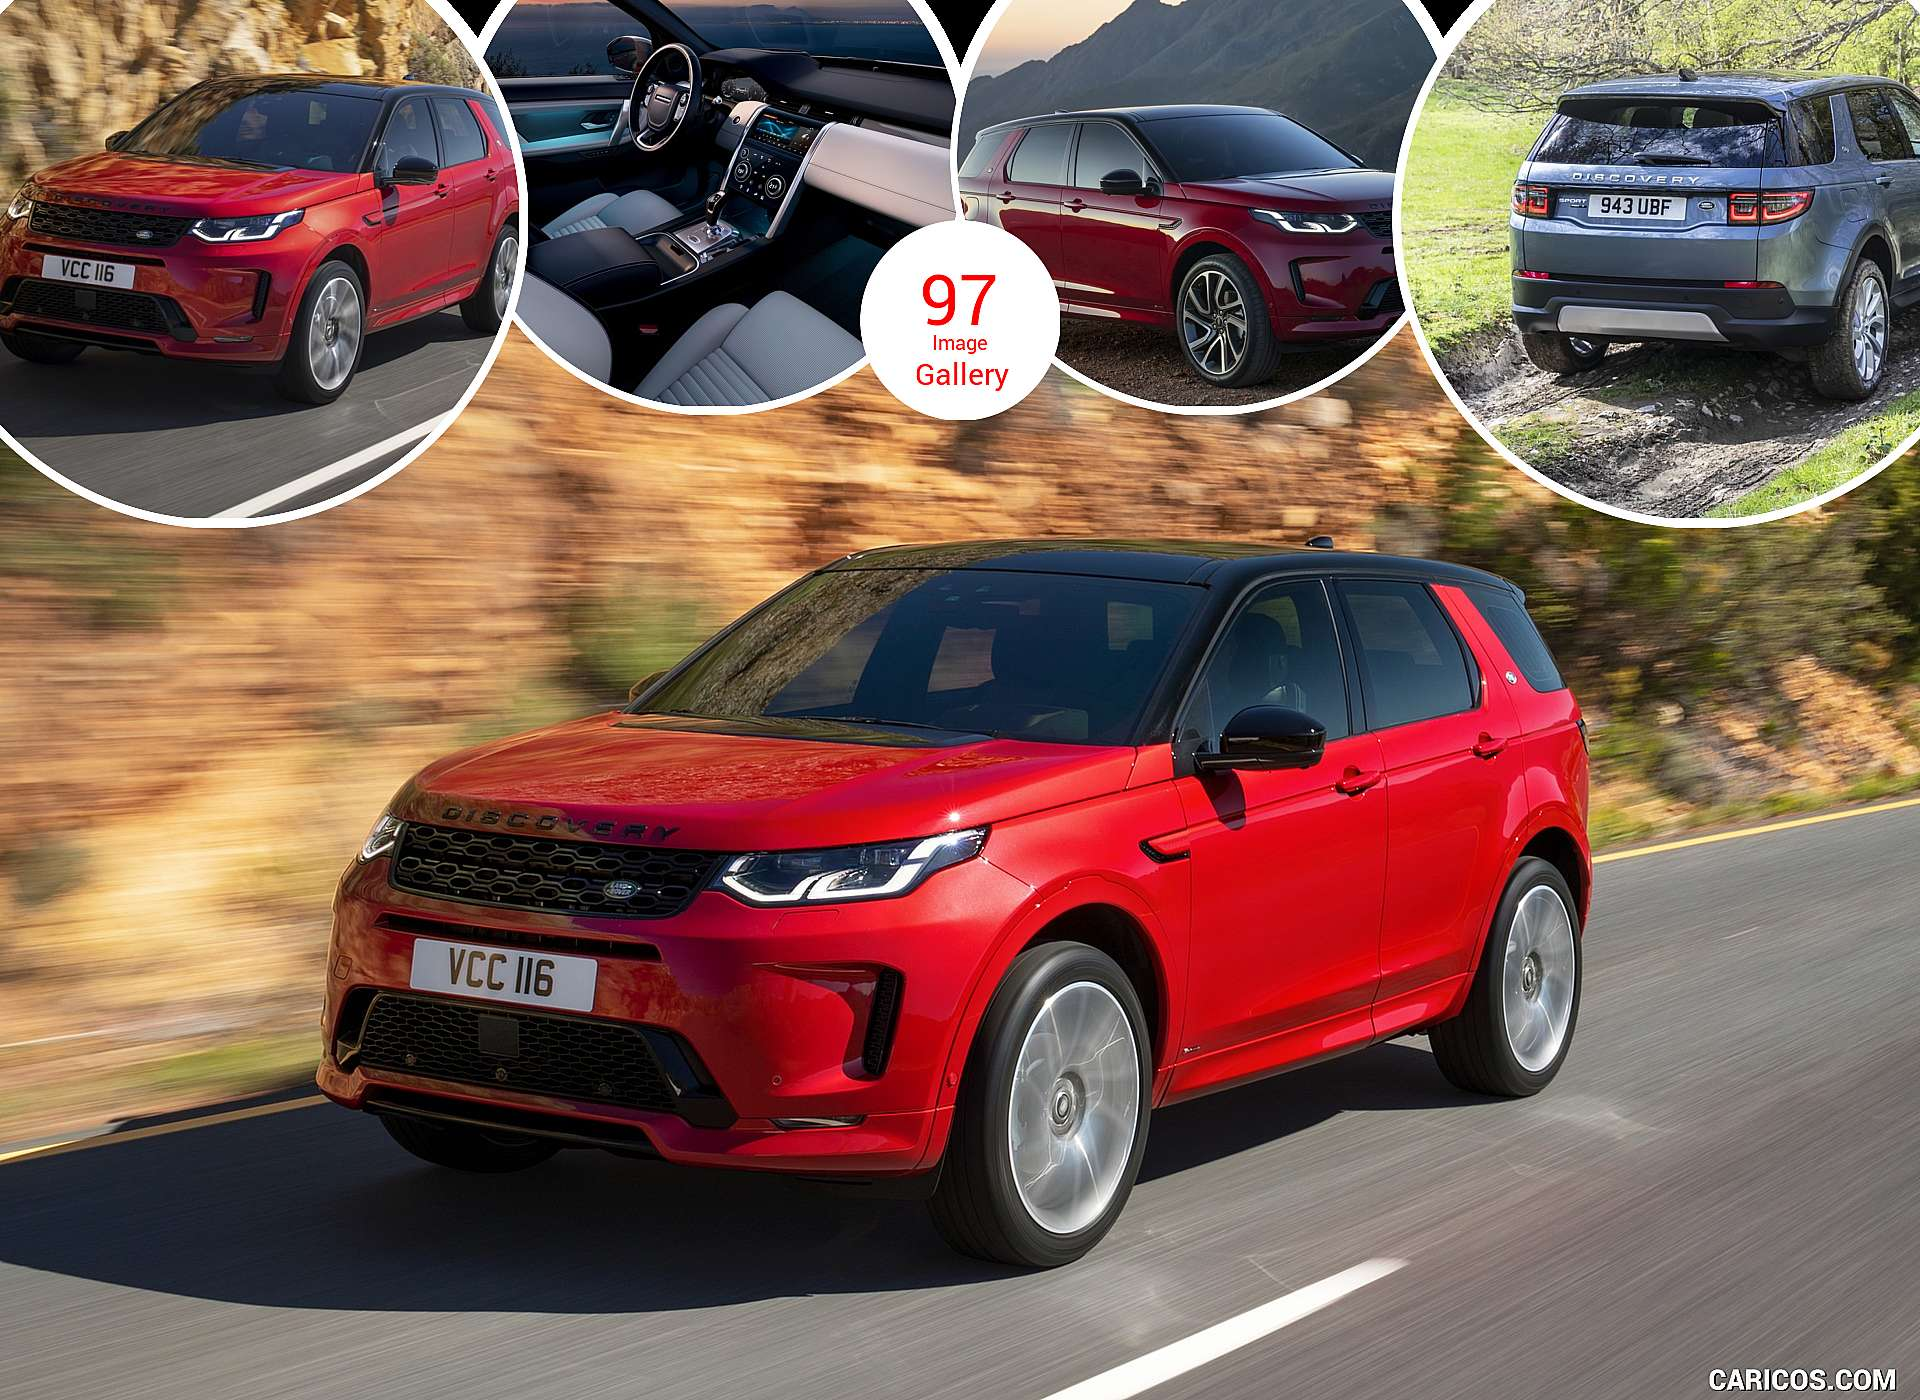 2020 Land Rover Discovery Is Built On The New Architecture >> 2020 Land Rover Discovery Sport Caricos Com